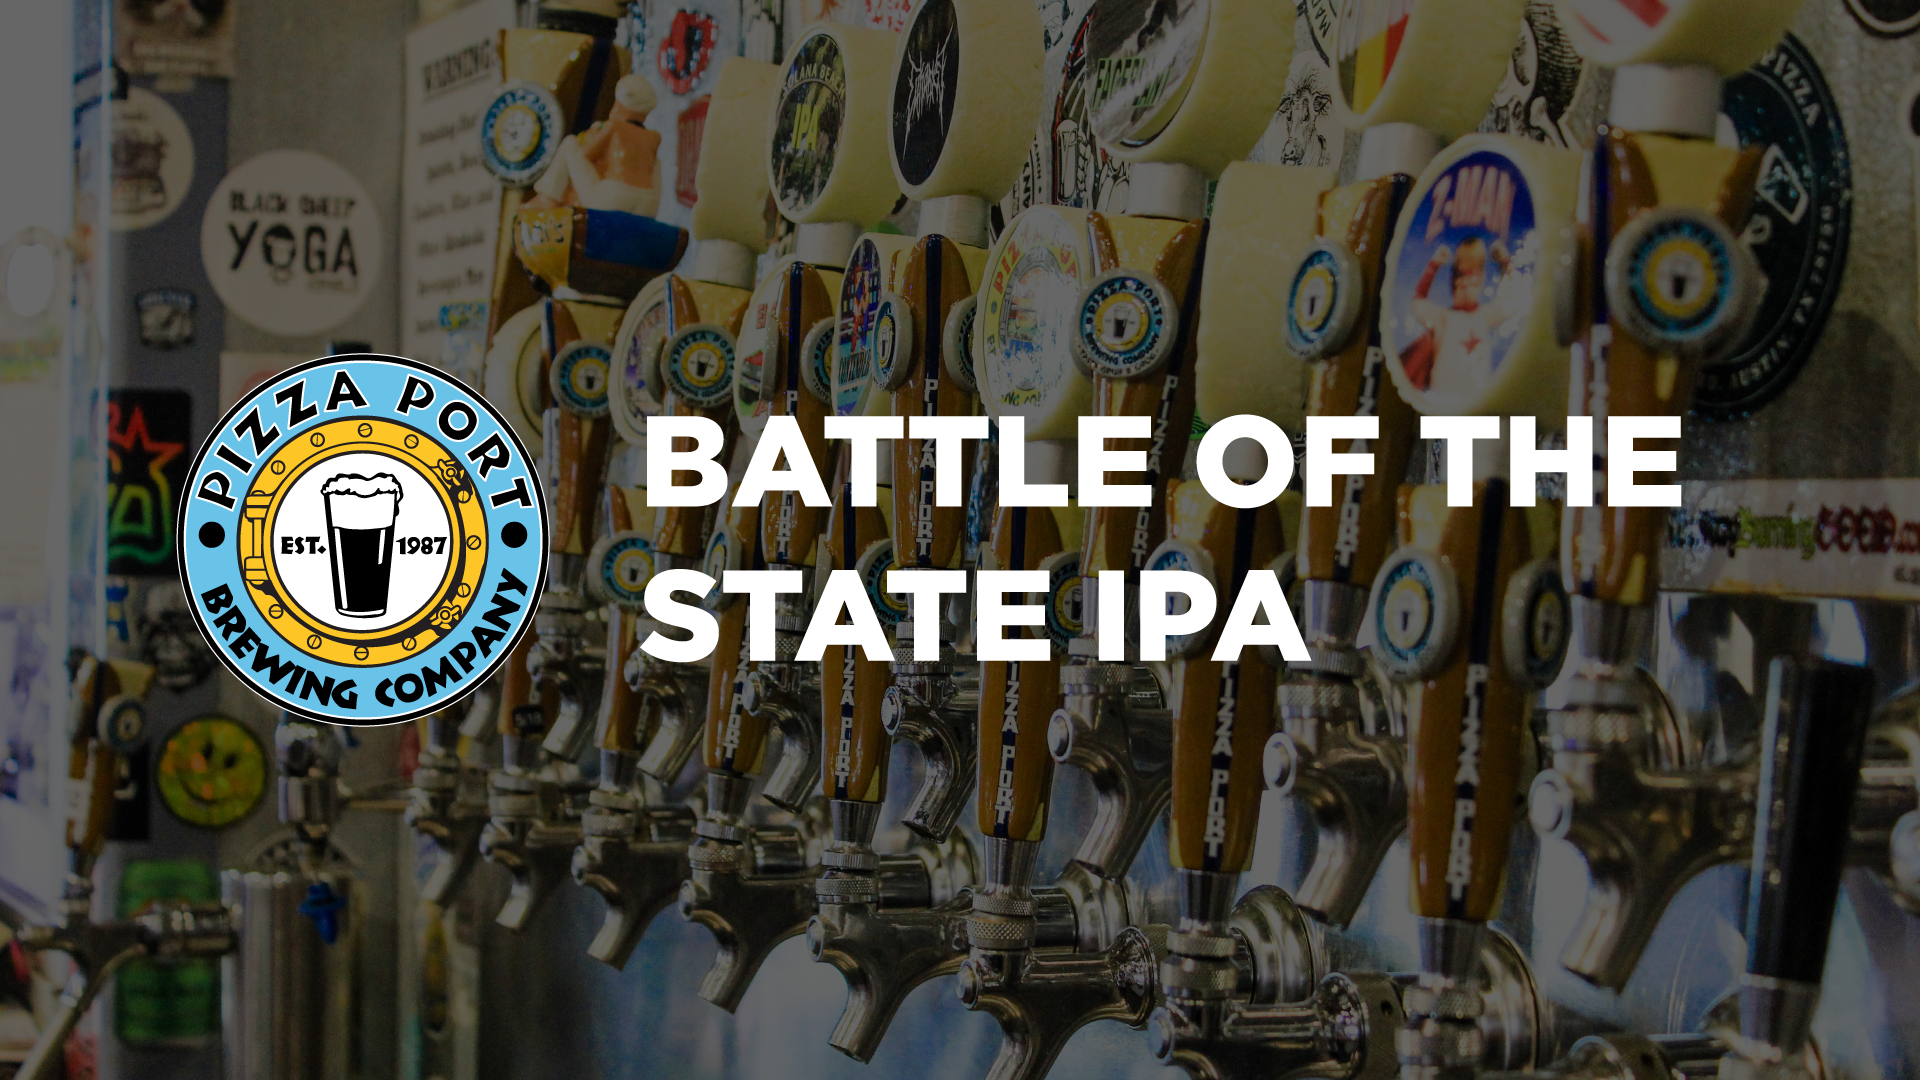 Battle of the State IPA